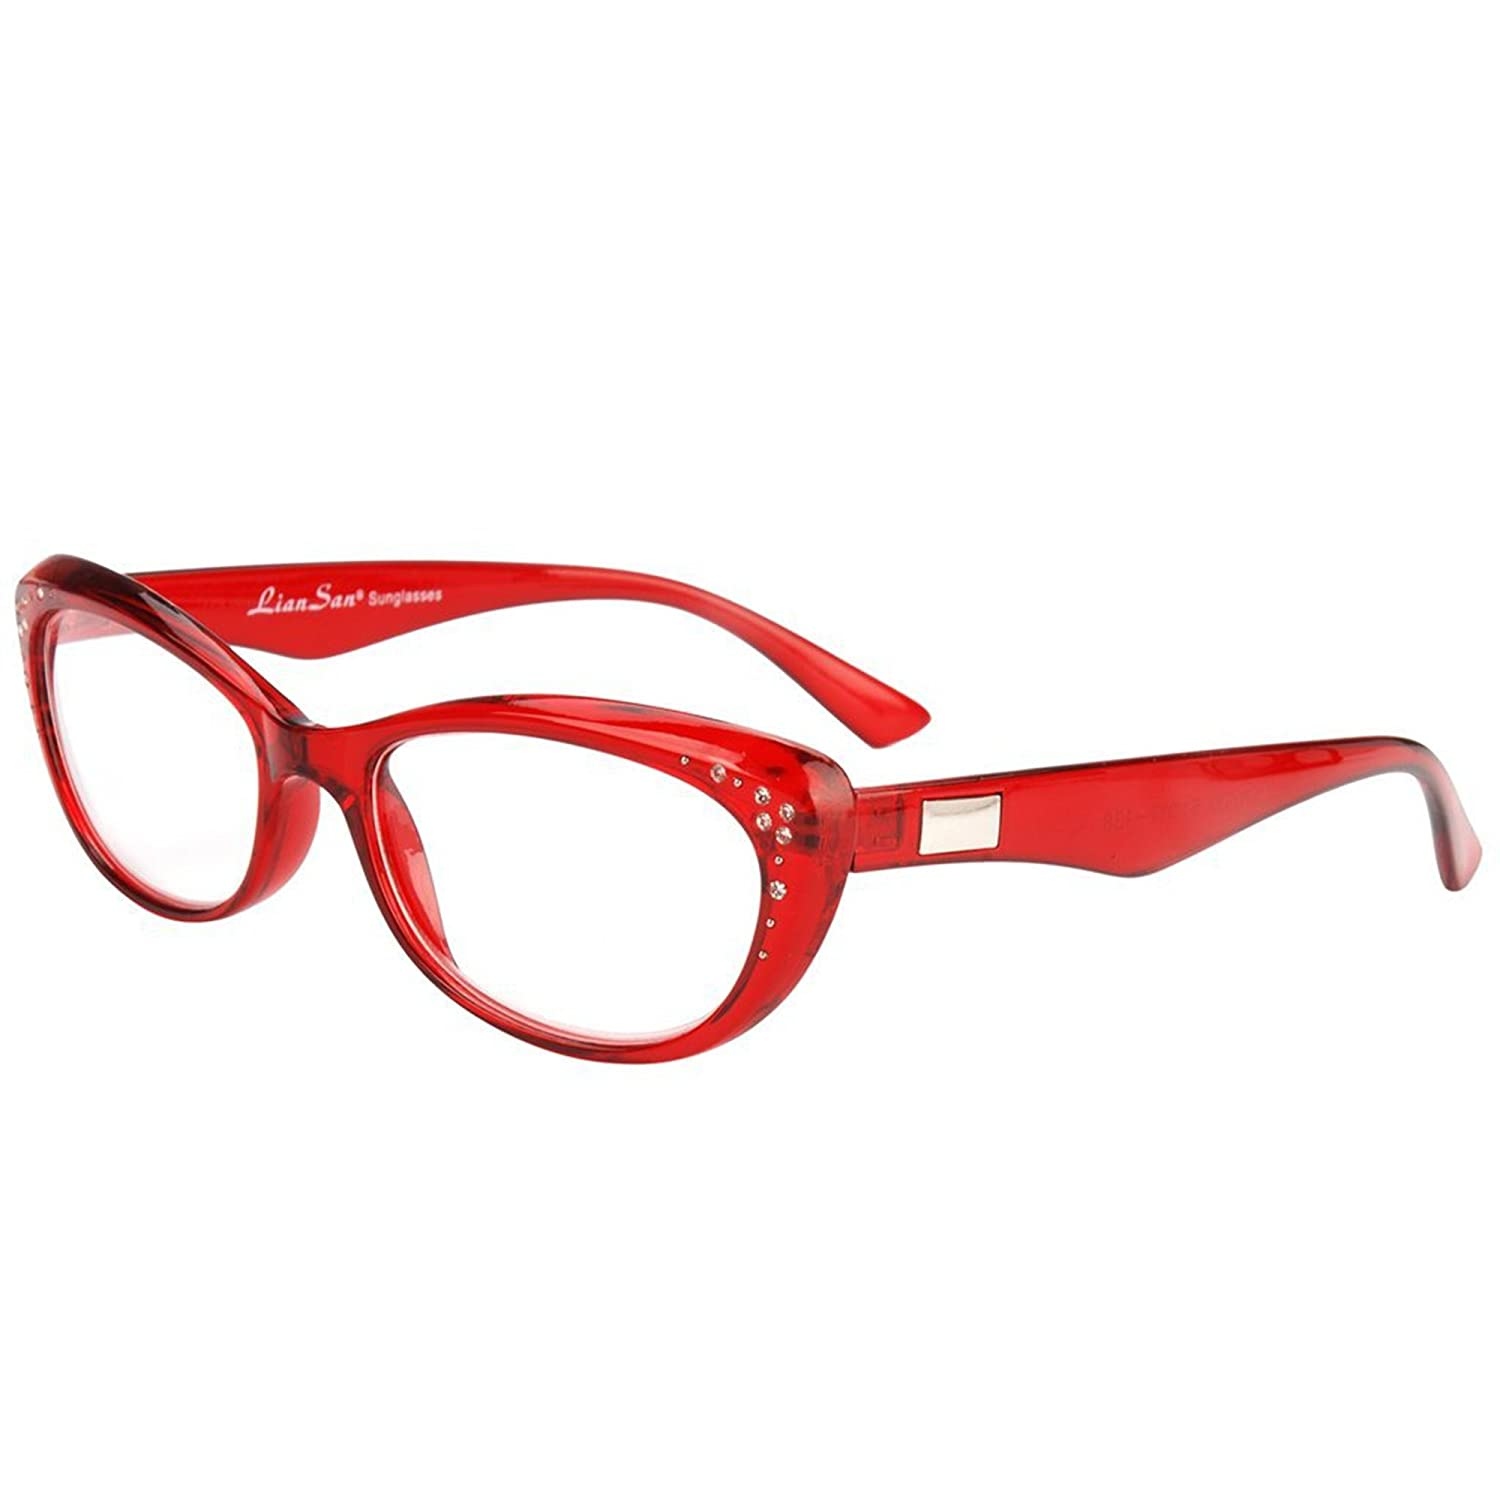 108ffdfc2768 Amazon.com  LianSan womens designer wayfarer compact cat eye retro fashion  reading glasses 1.0 1.25 1 .5 1.75 2 00 2.25 2.50 2.75 3.0 3.25 3.5 4.0  L3705 red ...